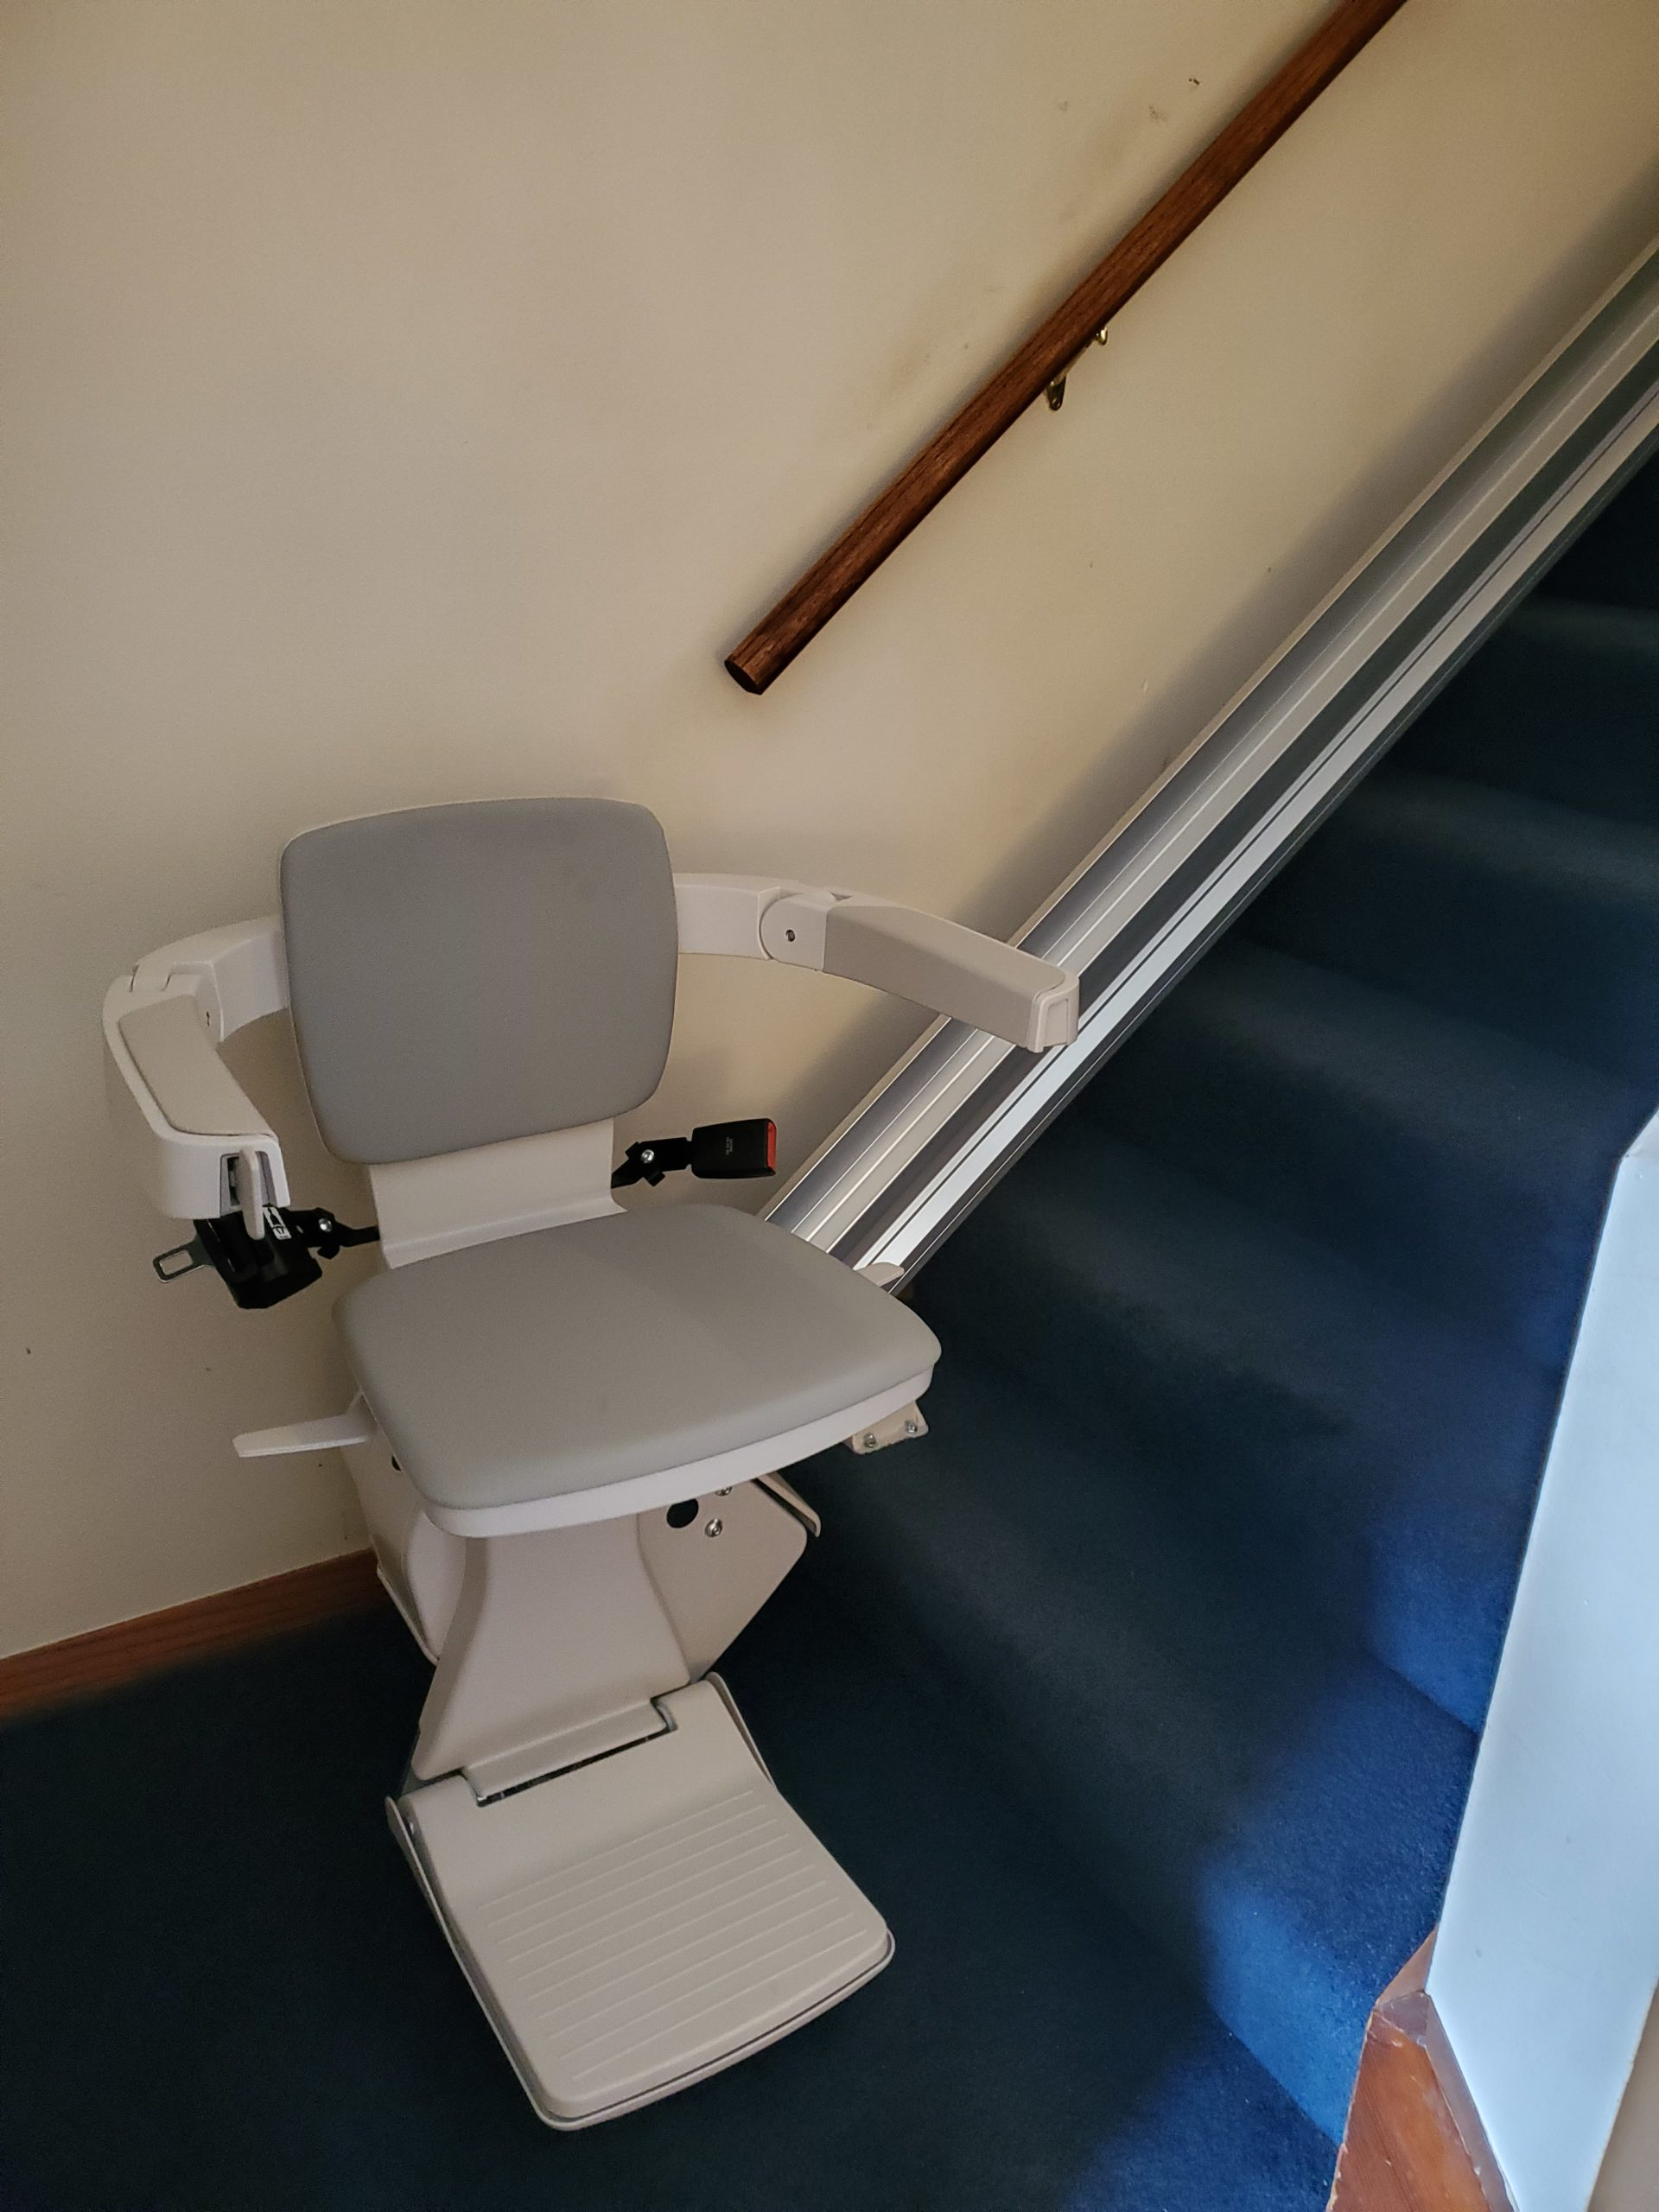 Stair Lifts, Bruno Stair Lifts, and Savaria Stairlifts in Chicago, IL